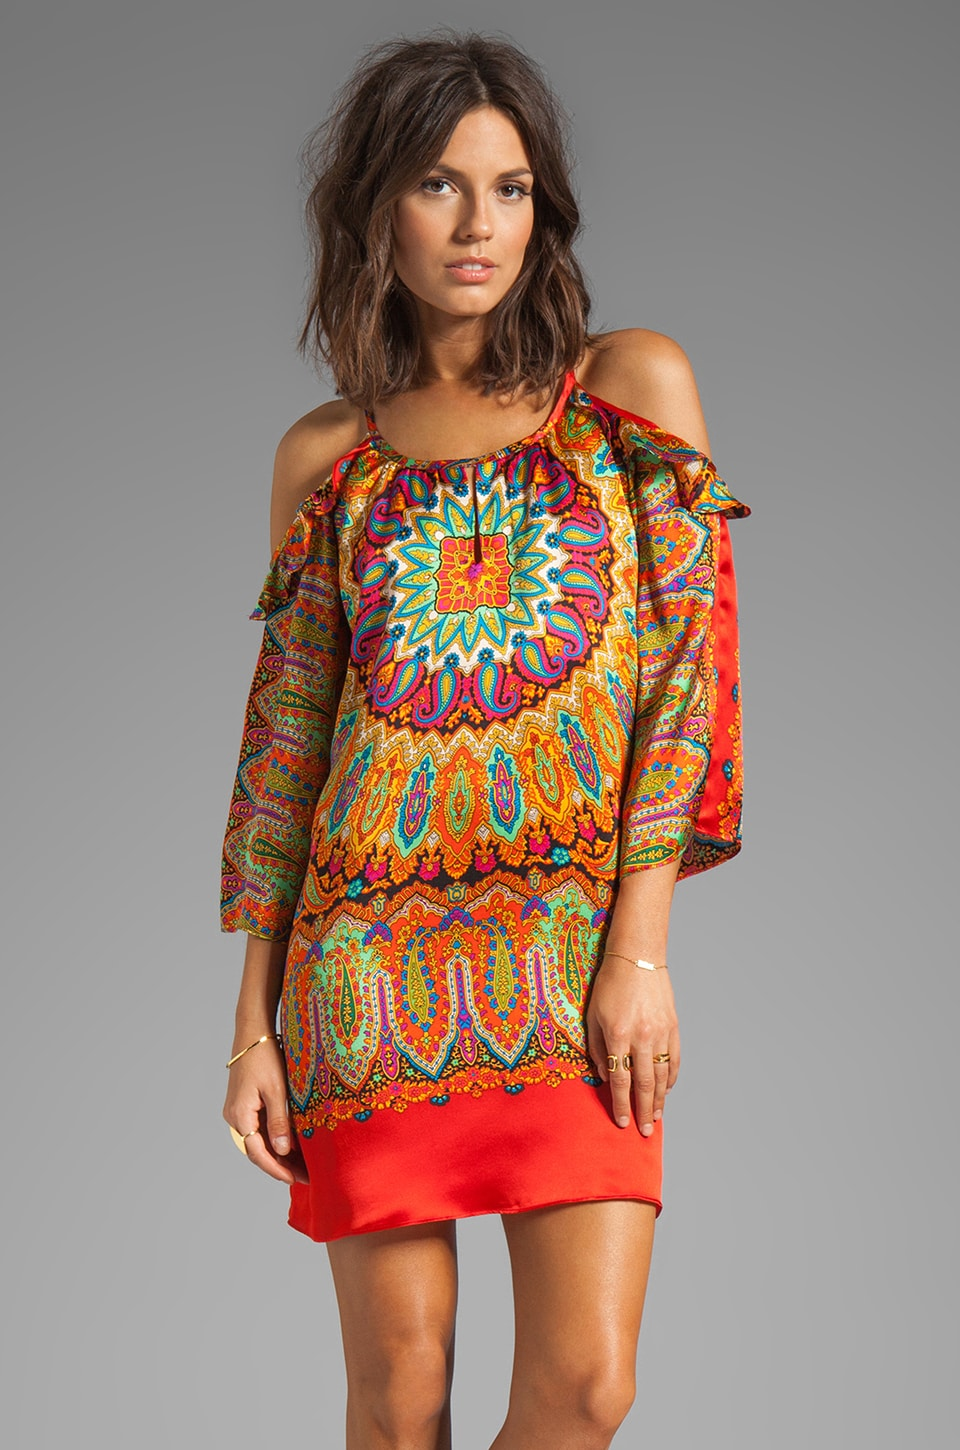 VOOM by Joy Han Zoey 3/4 Sleeve Dress in Multi